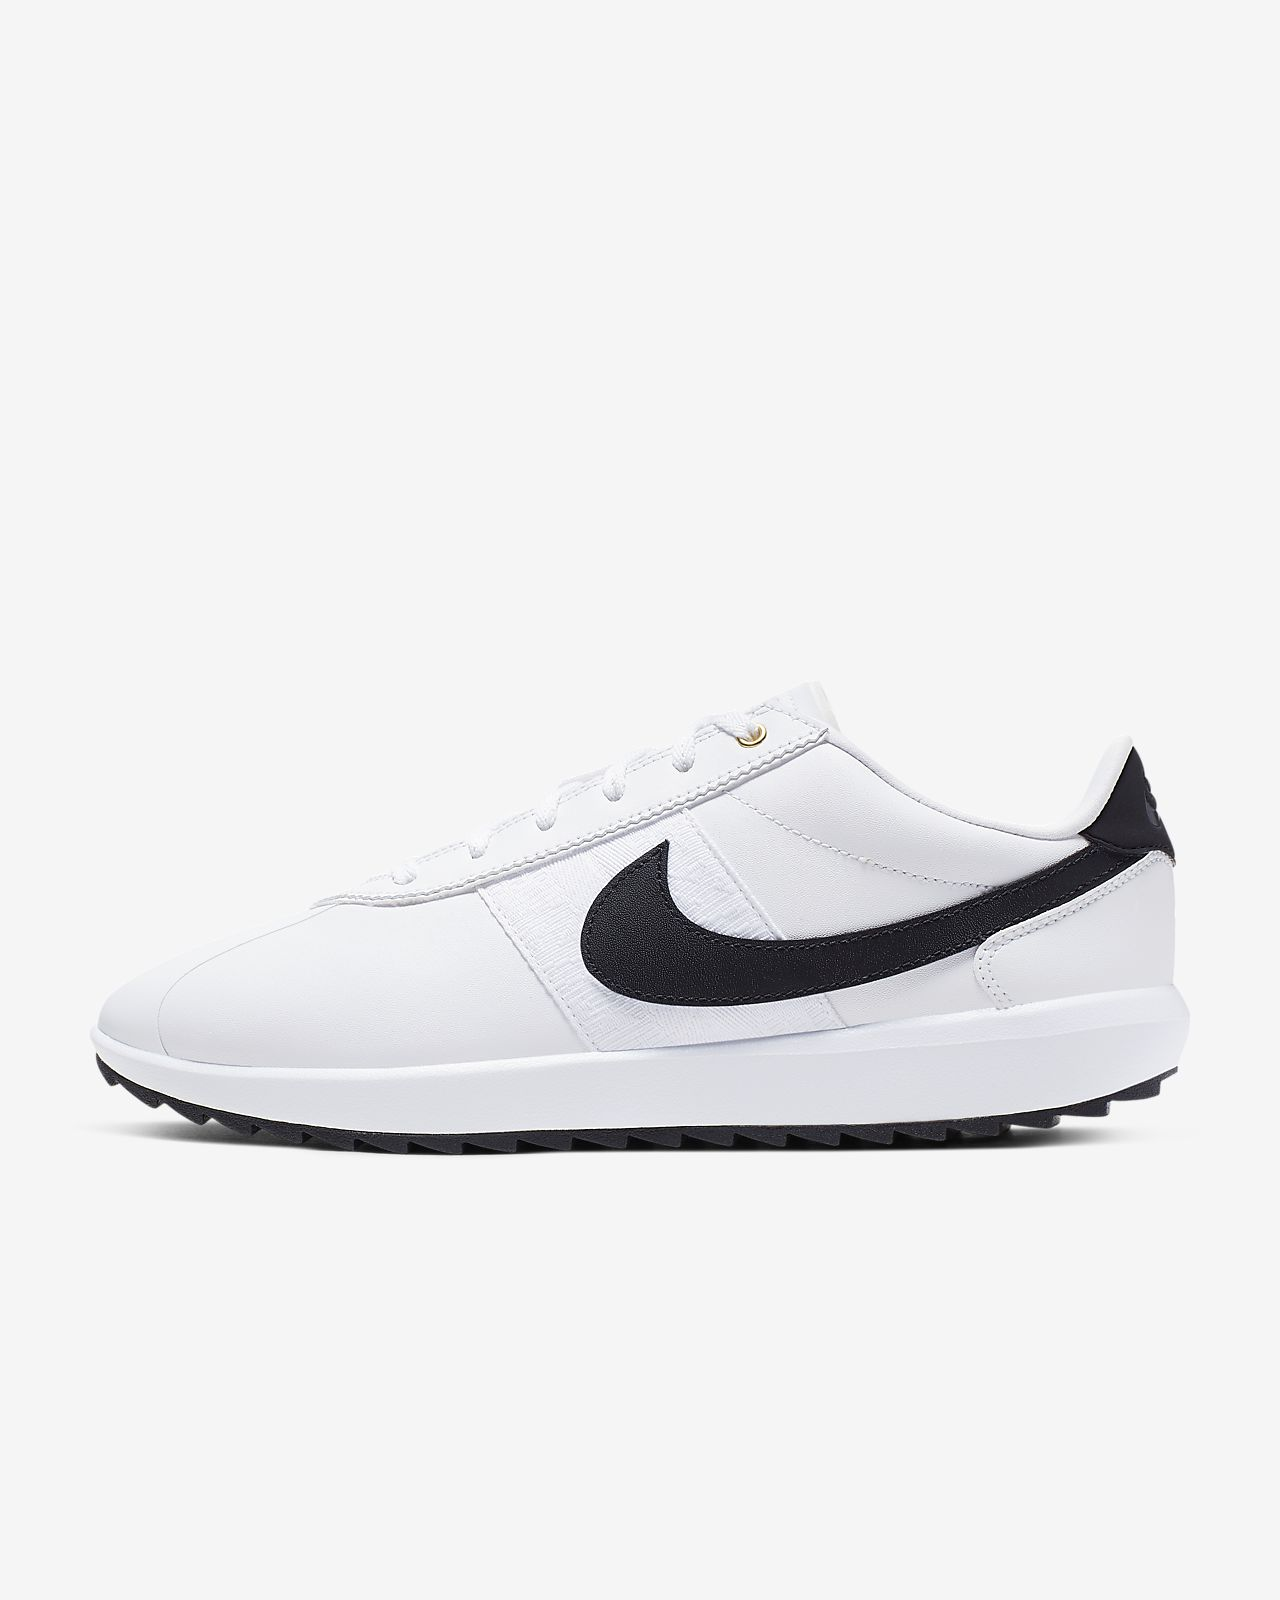 Nike Cortez G Women's Golf Shoe